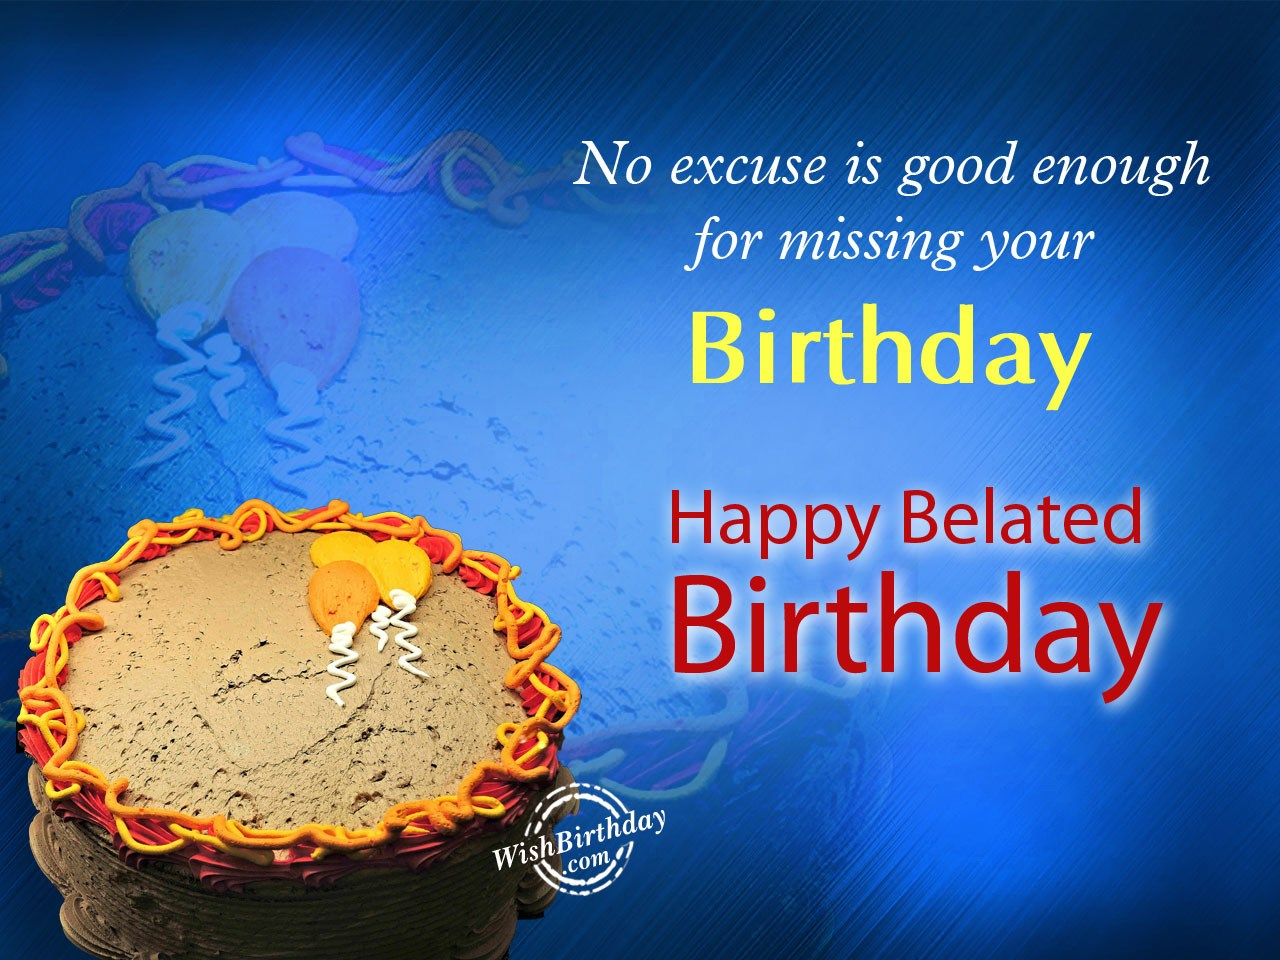 Belated Happy Birthday Wishes - Birthday Images, Pictures